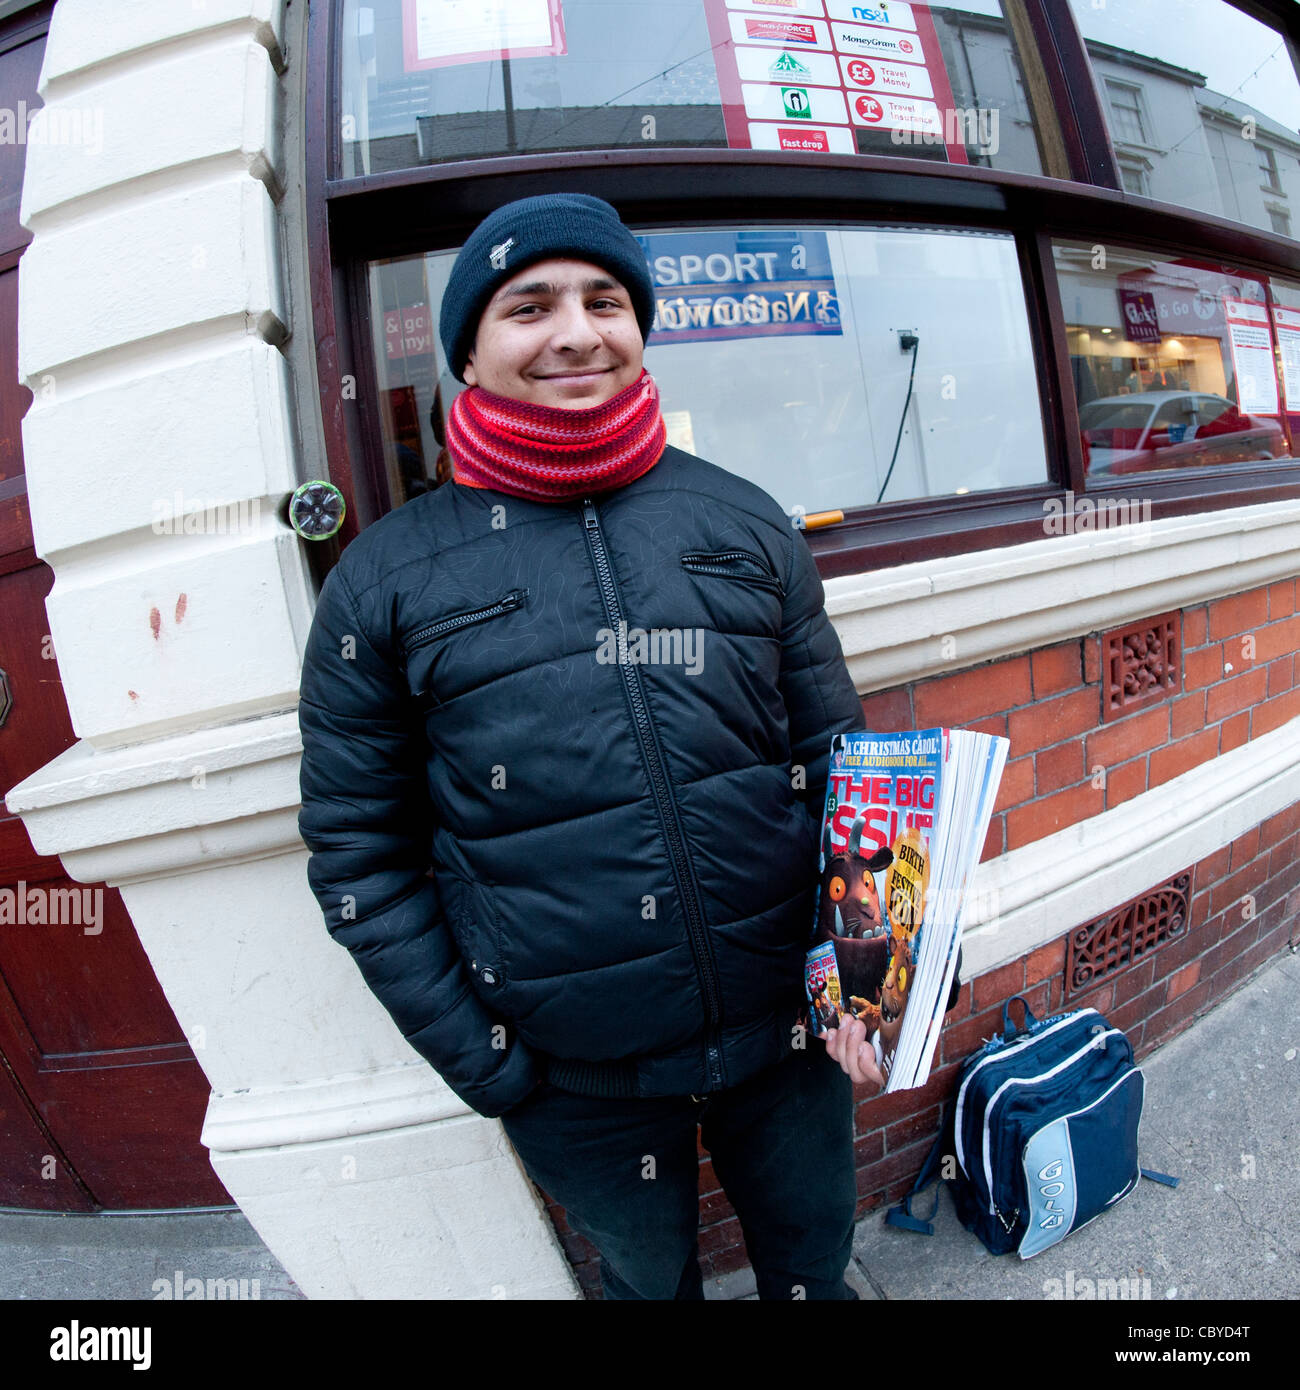 A homeless man selling copies of The Big Issue magazine, Christmas Eve, UK - Stock Image